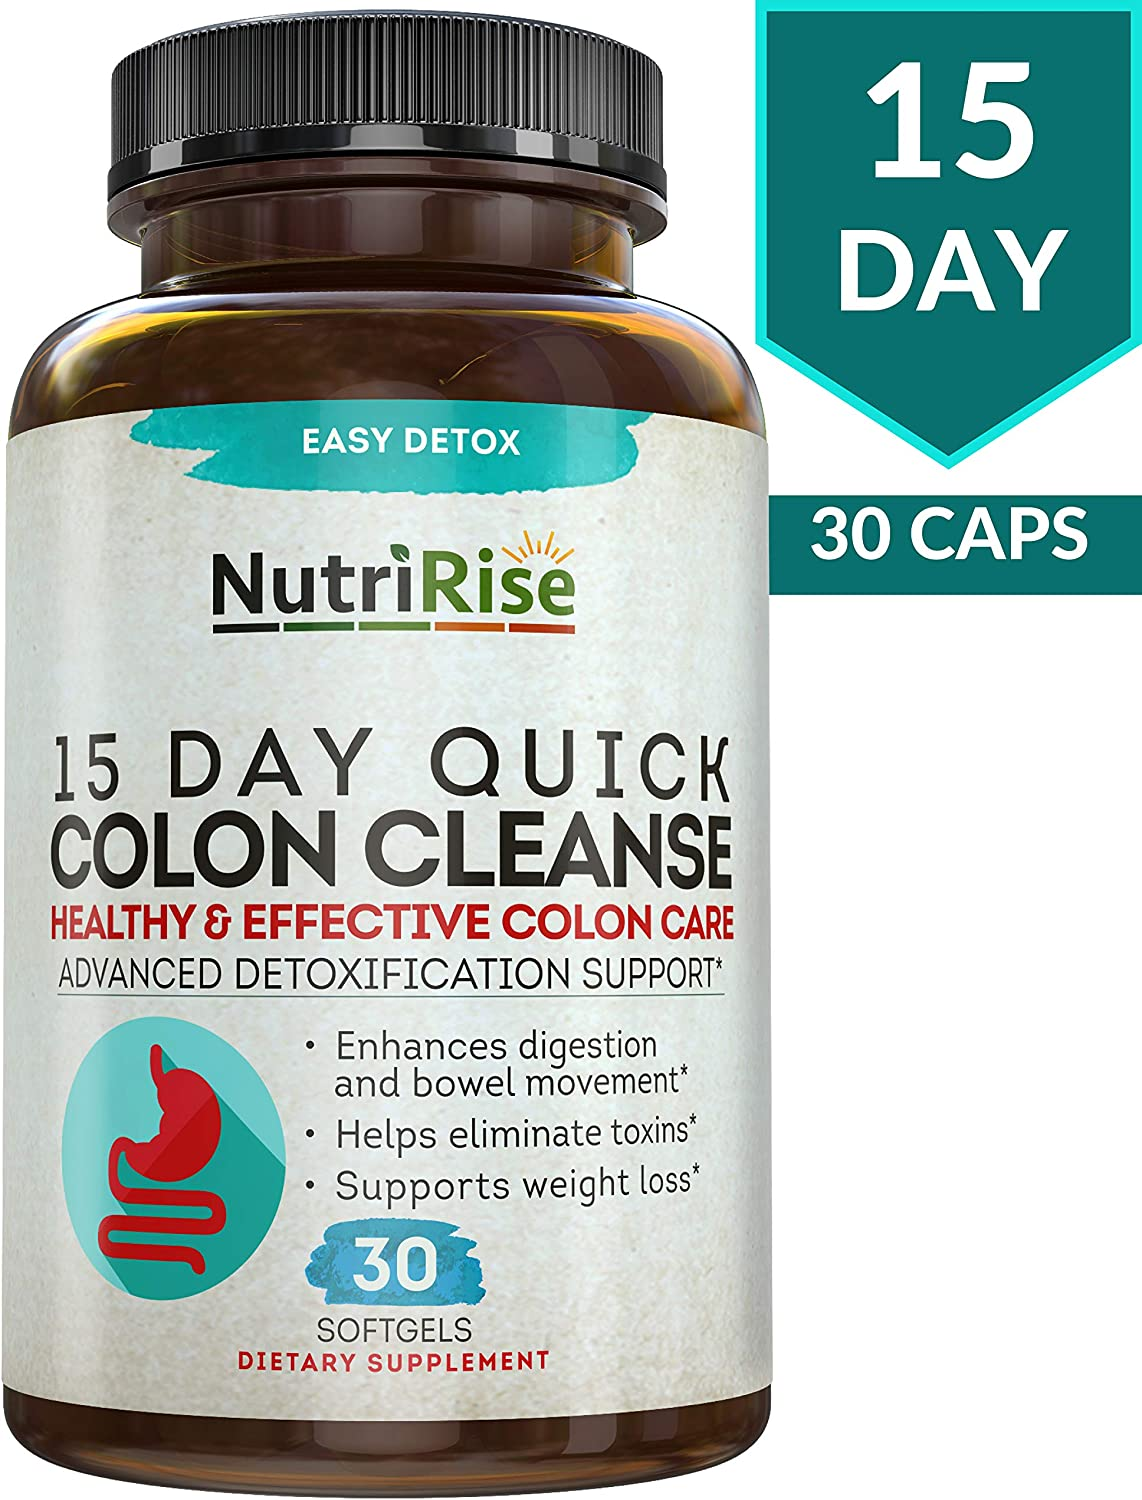 NutriRise 15 Day Quick Colon Cleanse